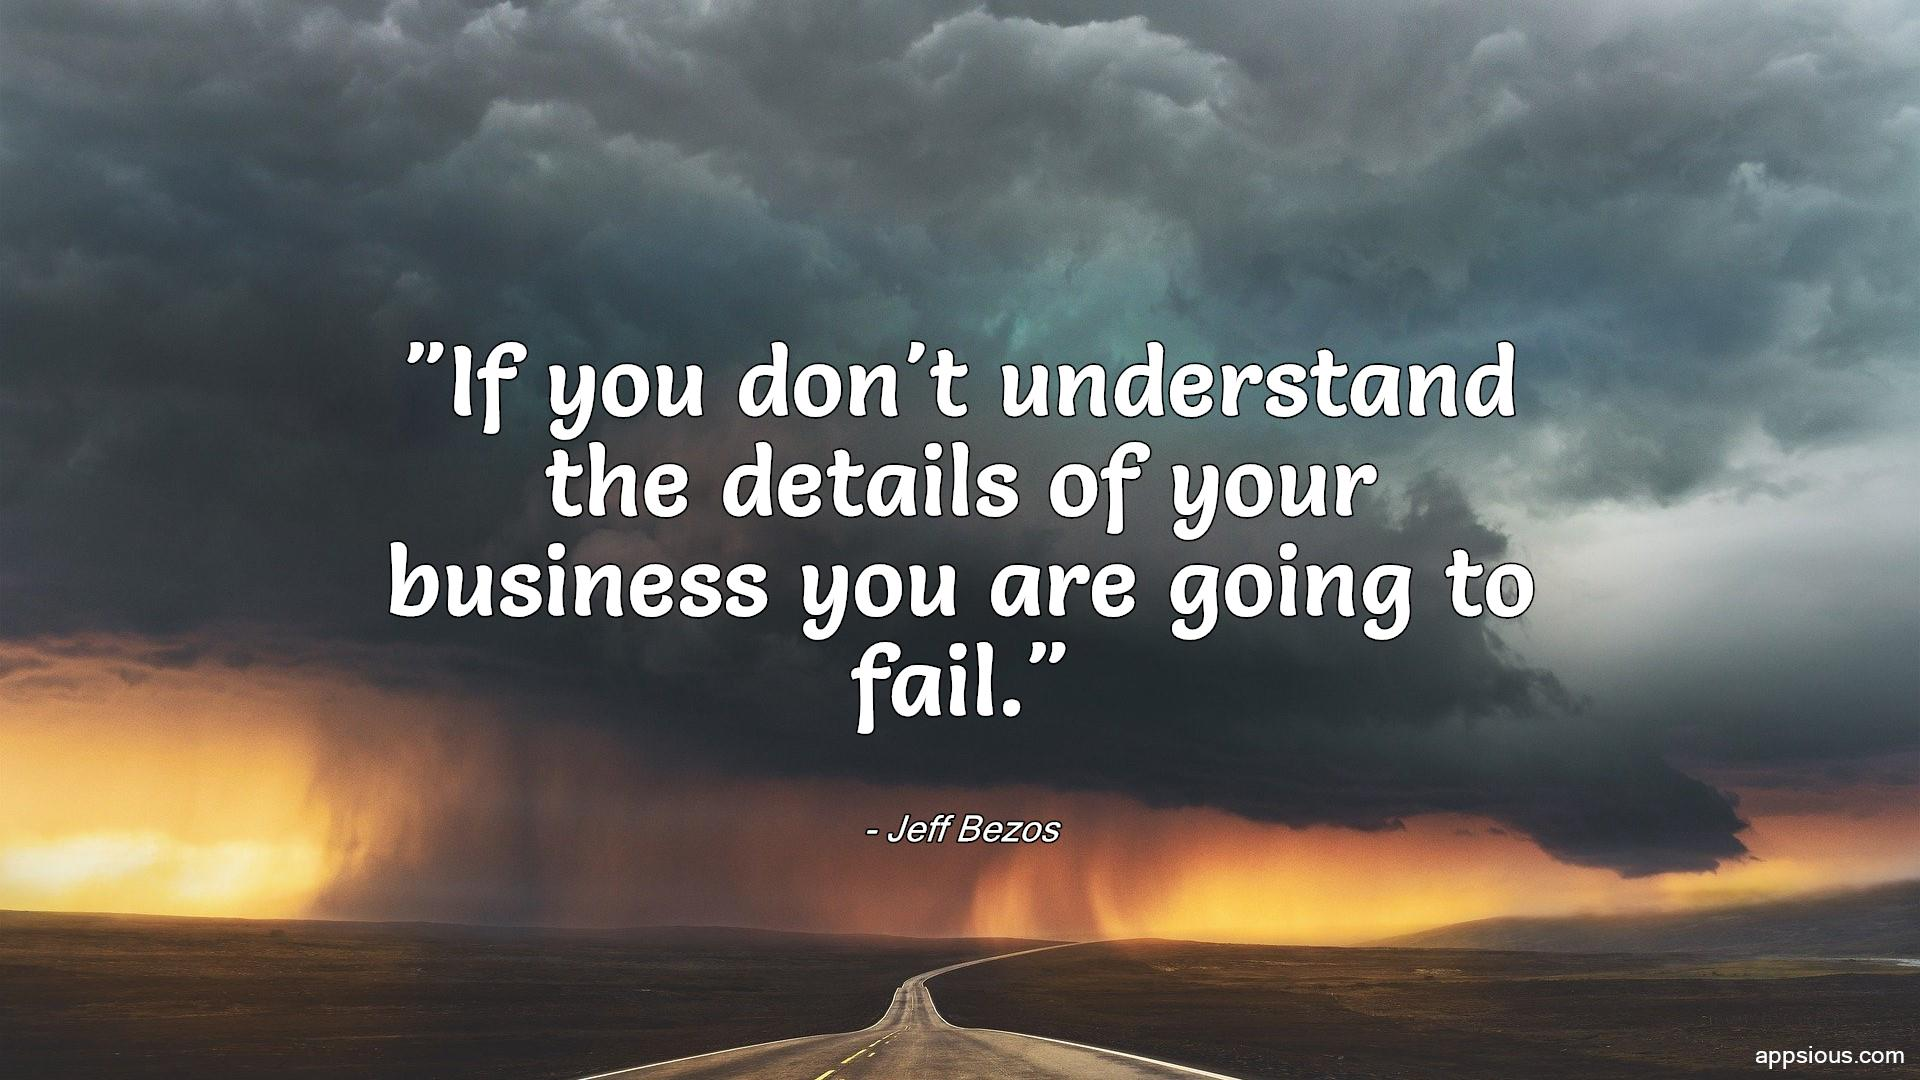 If you don't understand the details of your business you are going to fail.